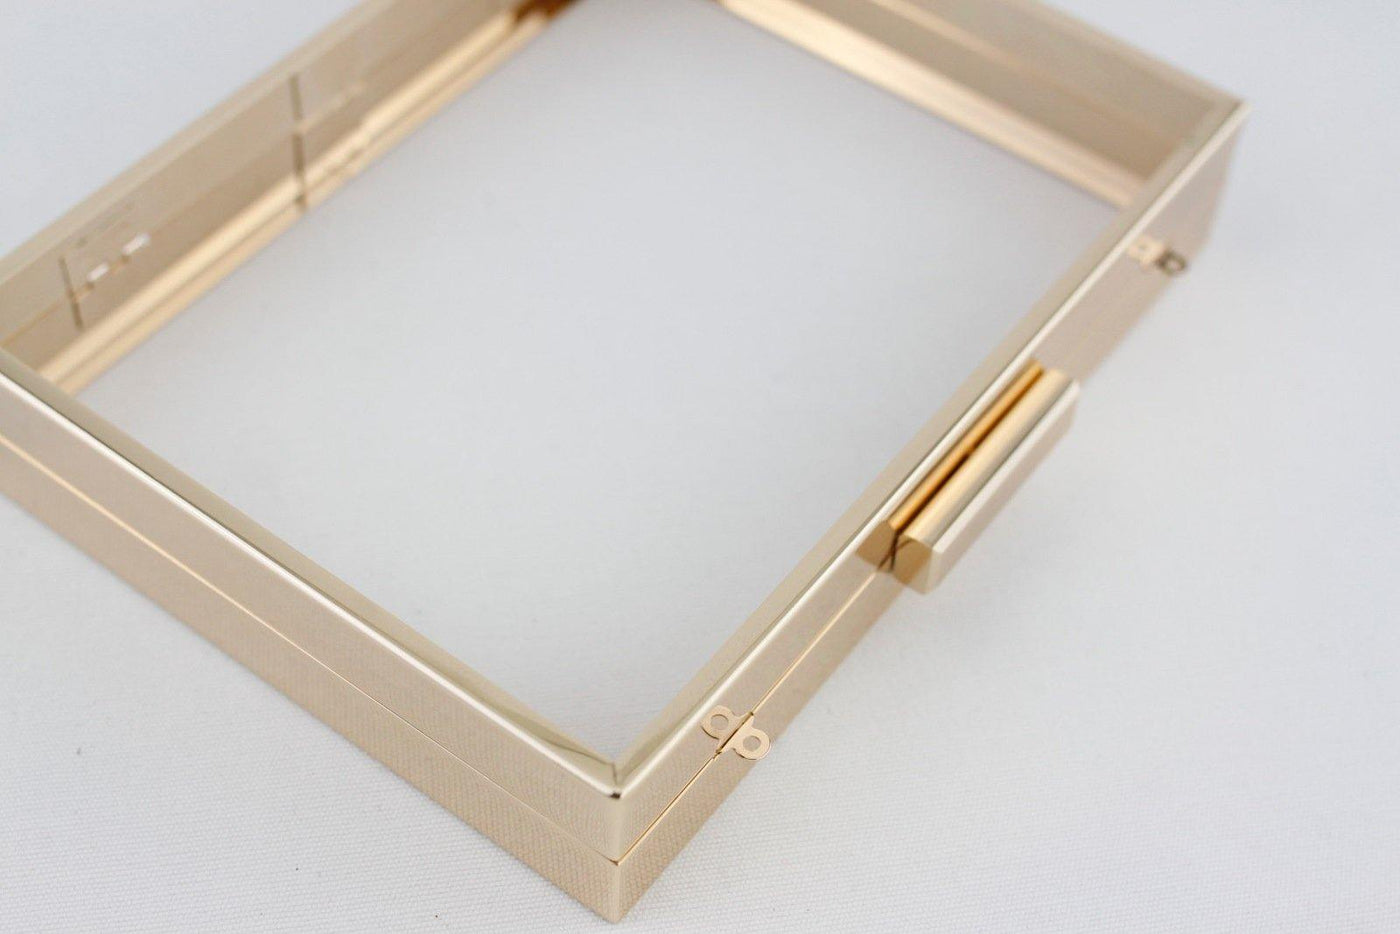 ... 8 X 6 Inch   Gold Hollow Clutch Frame With Chain Loops | SUPPLY4BAG ...